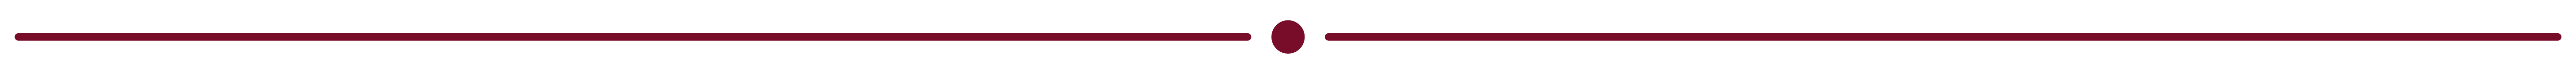 Studio_dividers_line-dot_dark-crimson.png